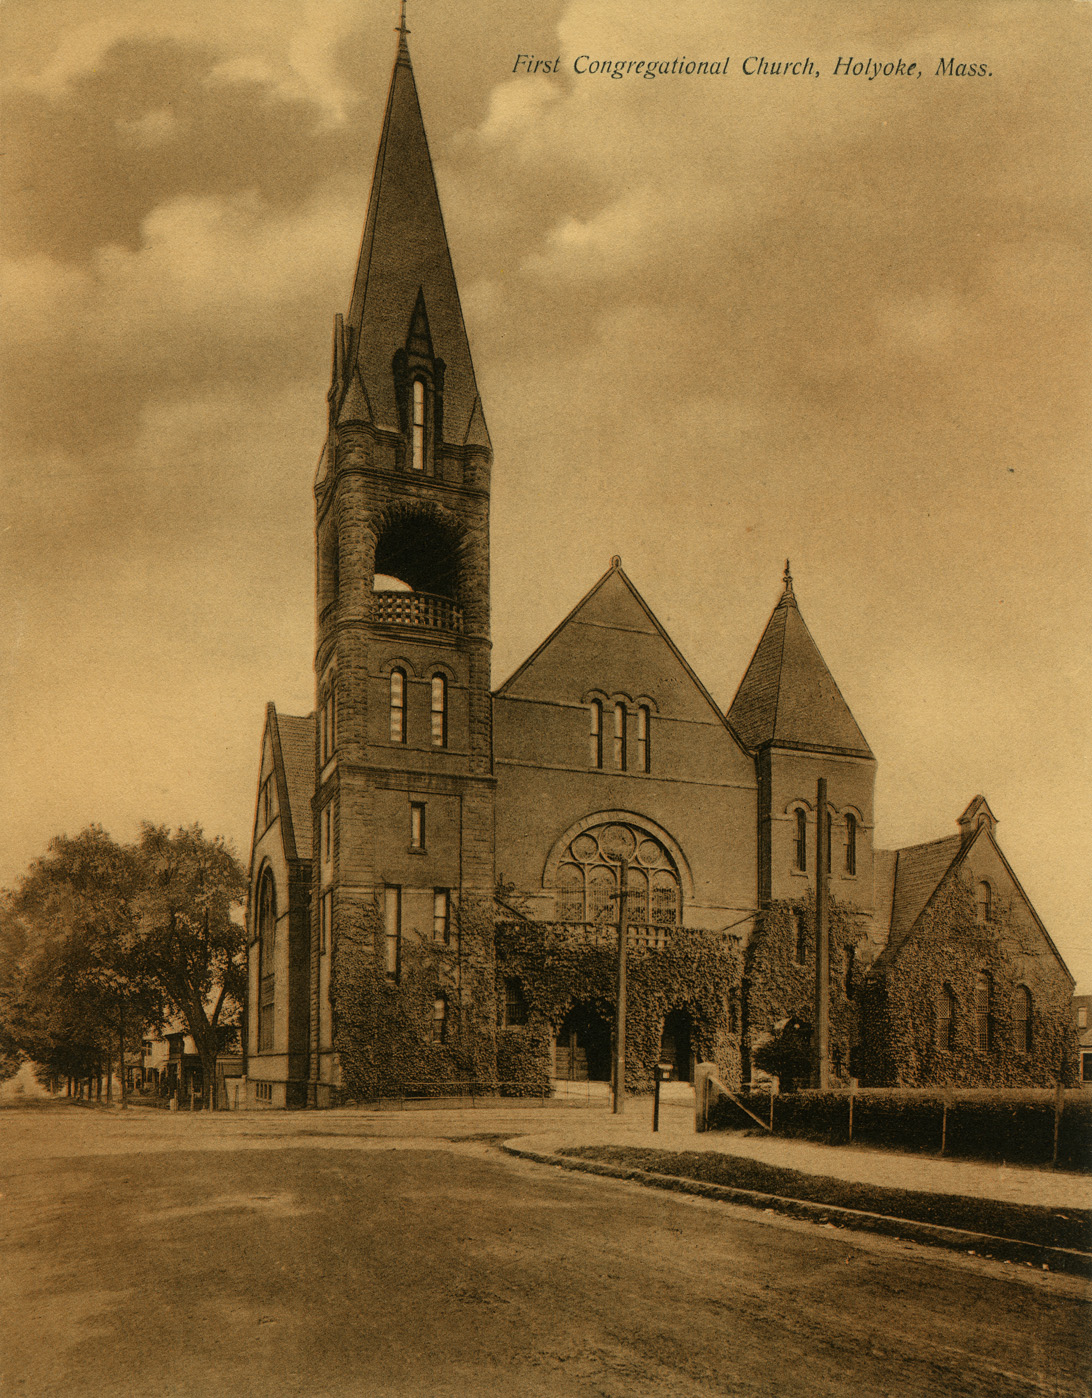 First Congregational Church, ca.1910